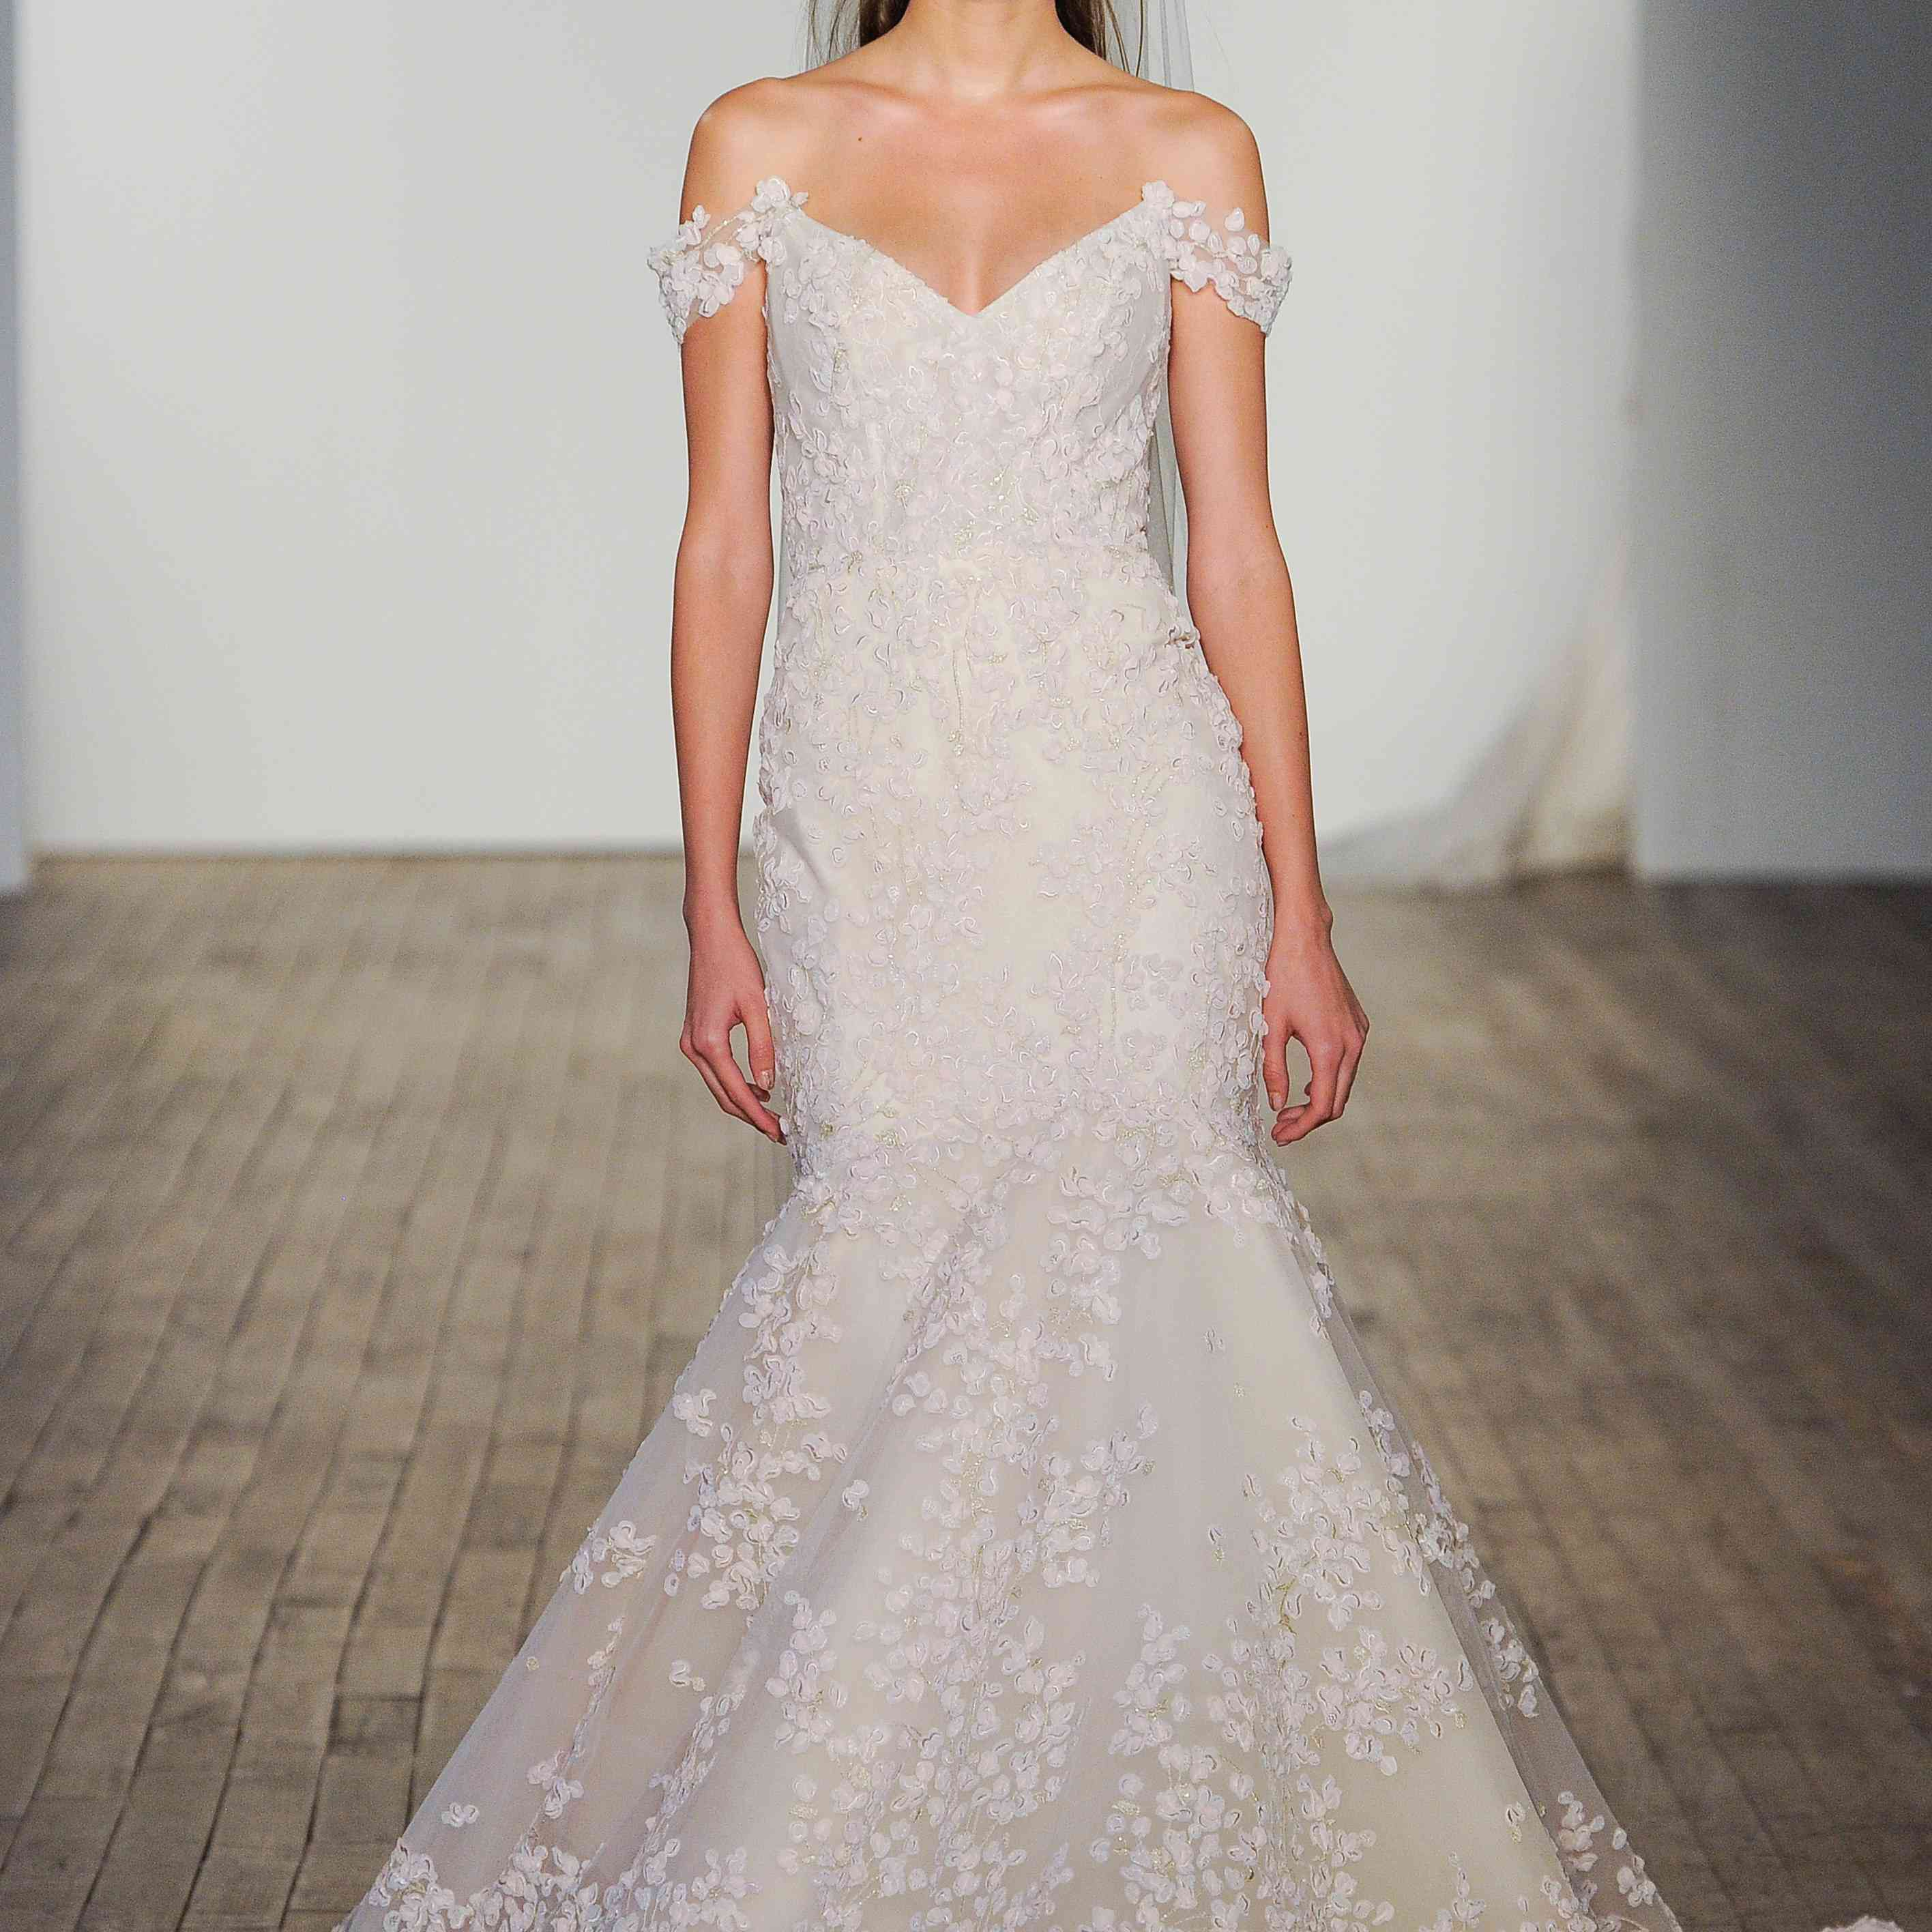 Ines off-the-shoulder fit-and-flare wedding dress